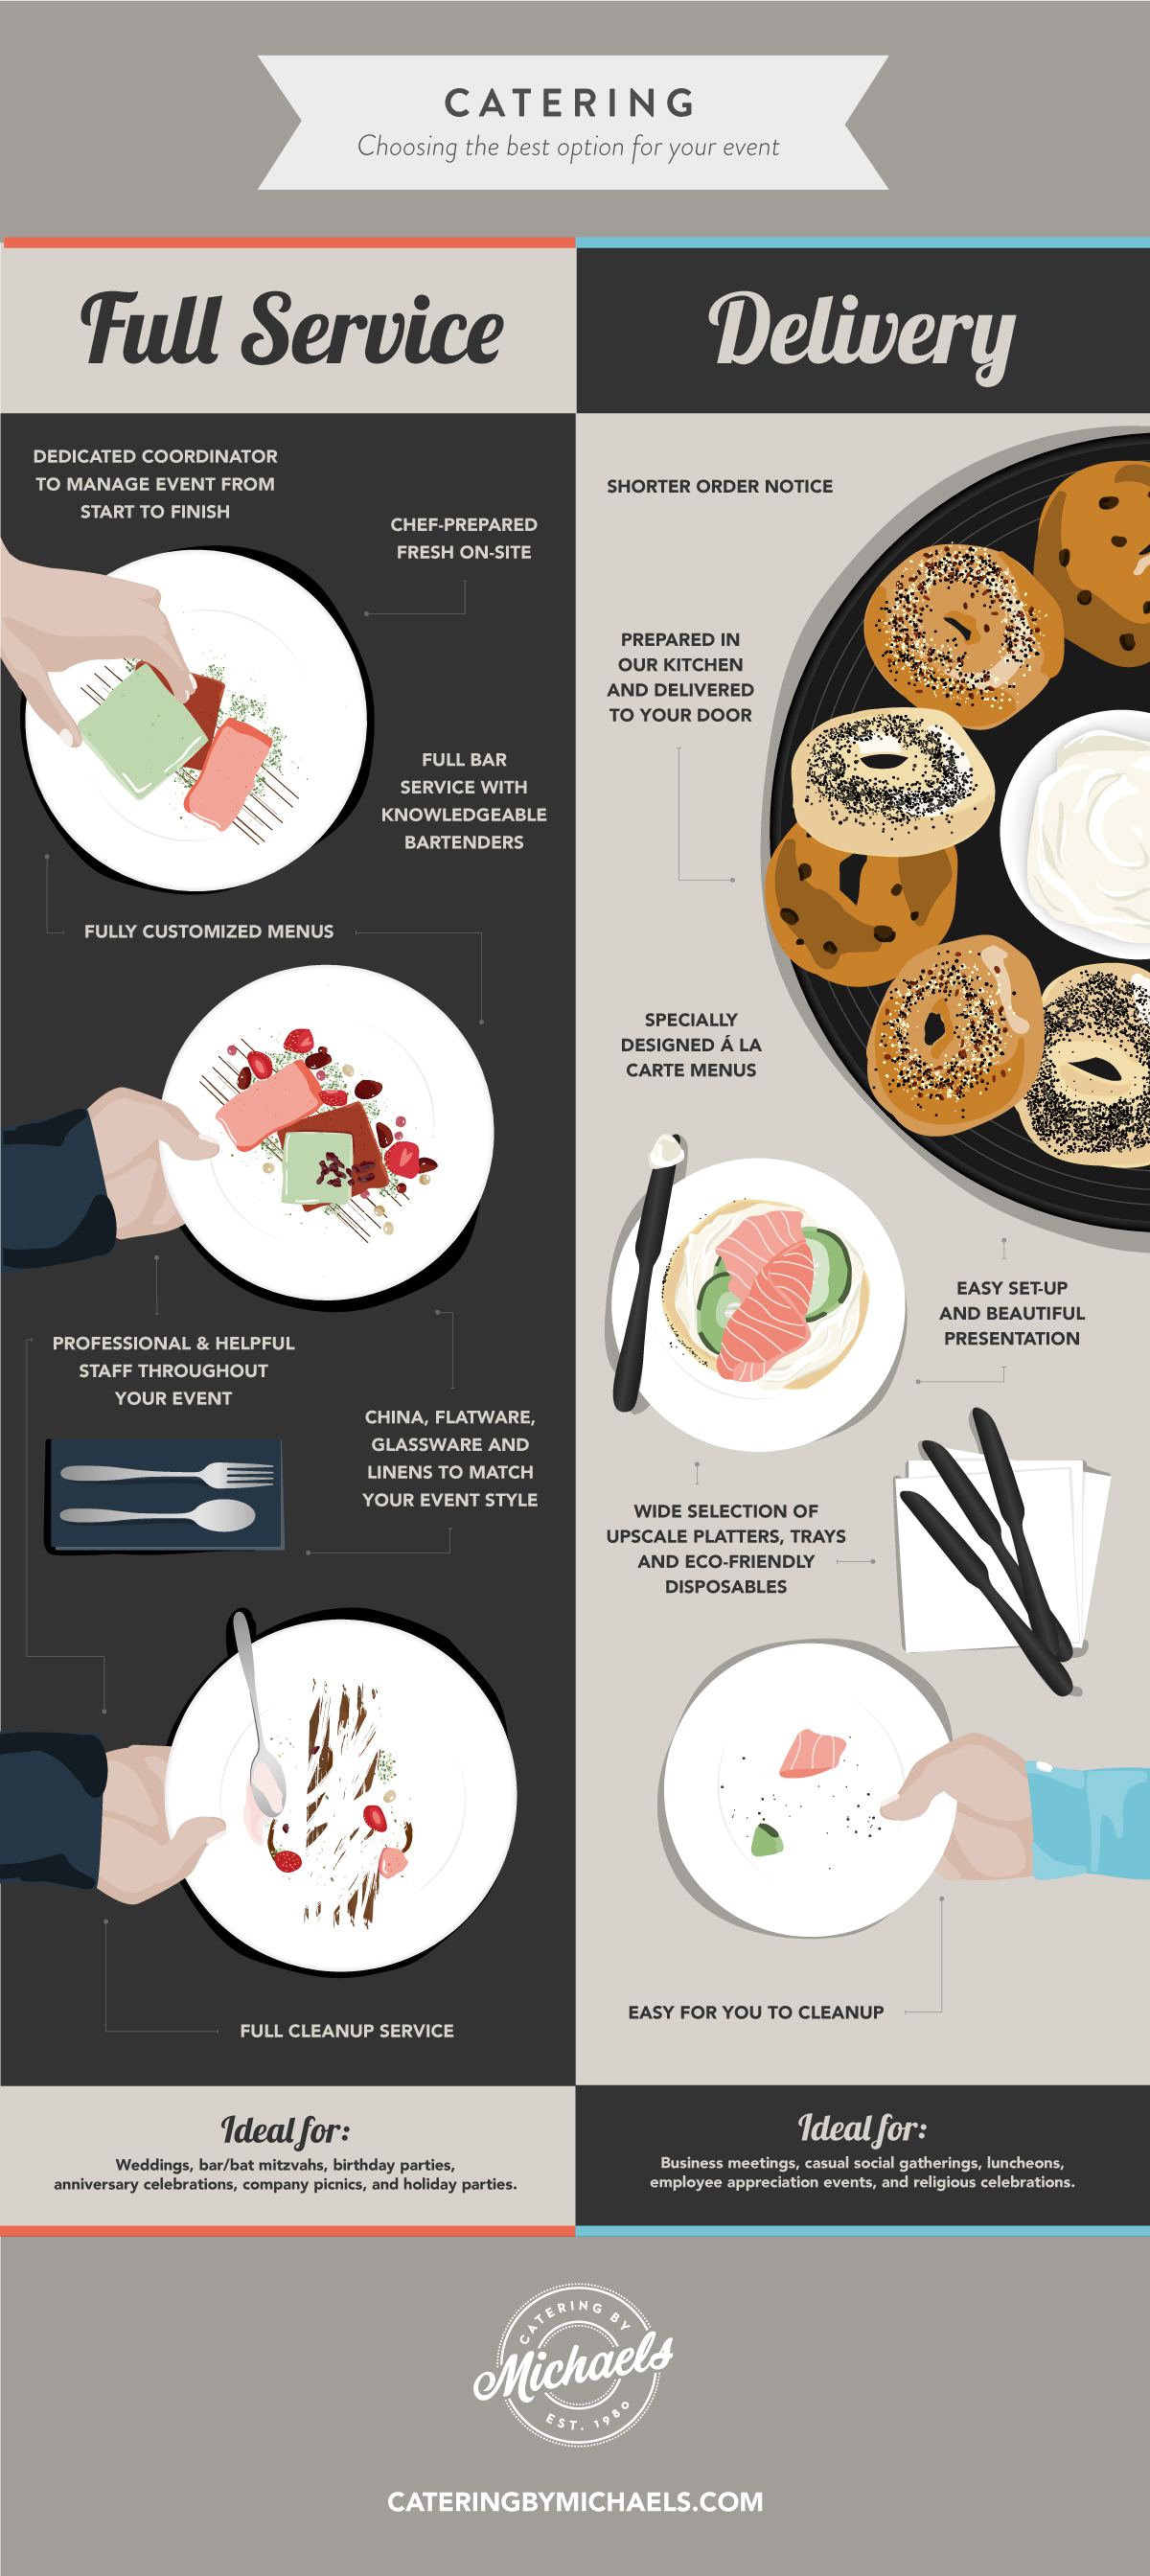 Full Service vs Delivery Catering Infographic